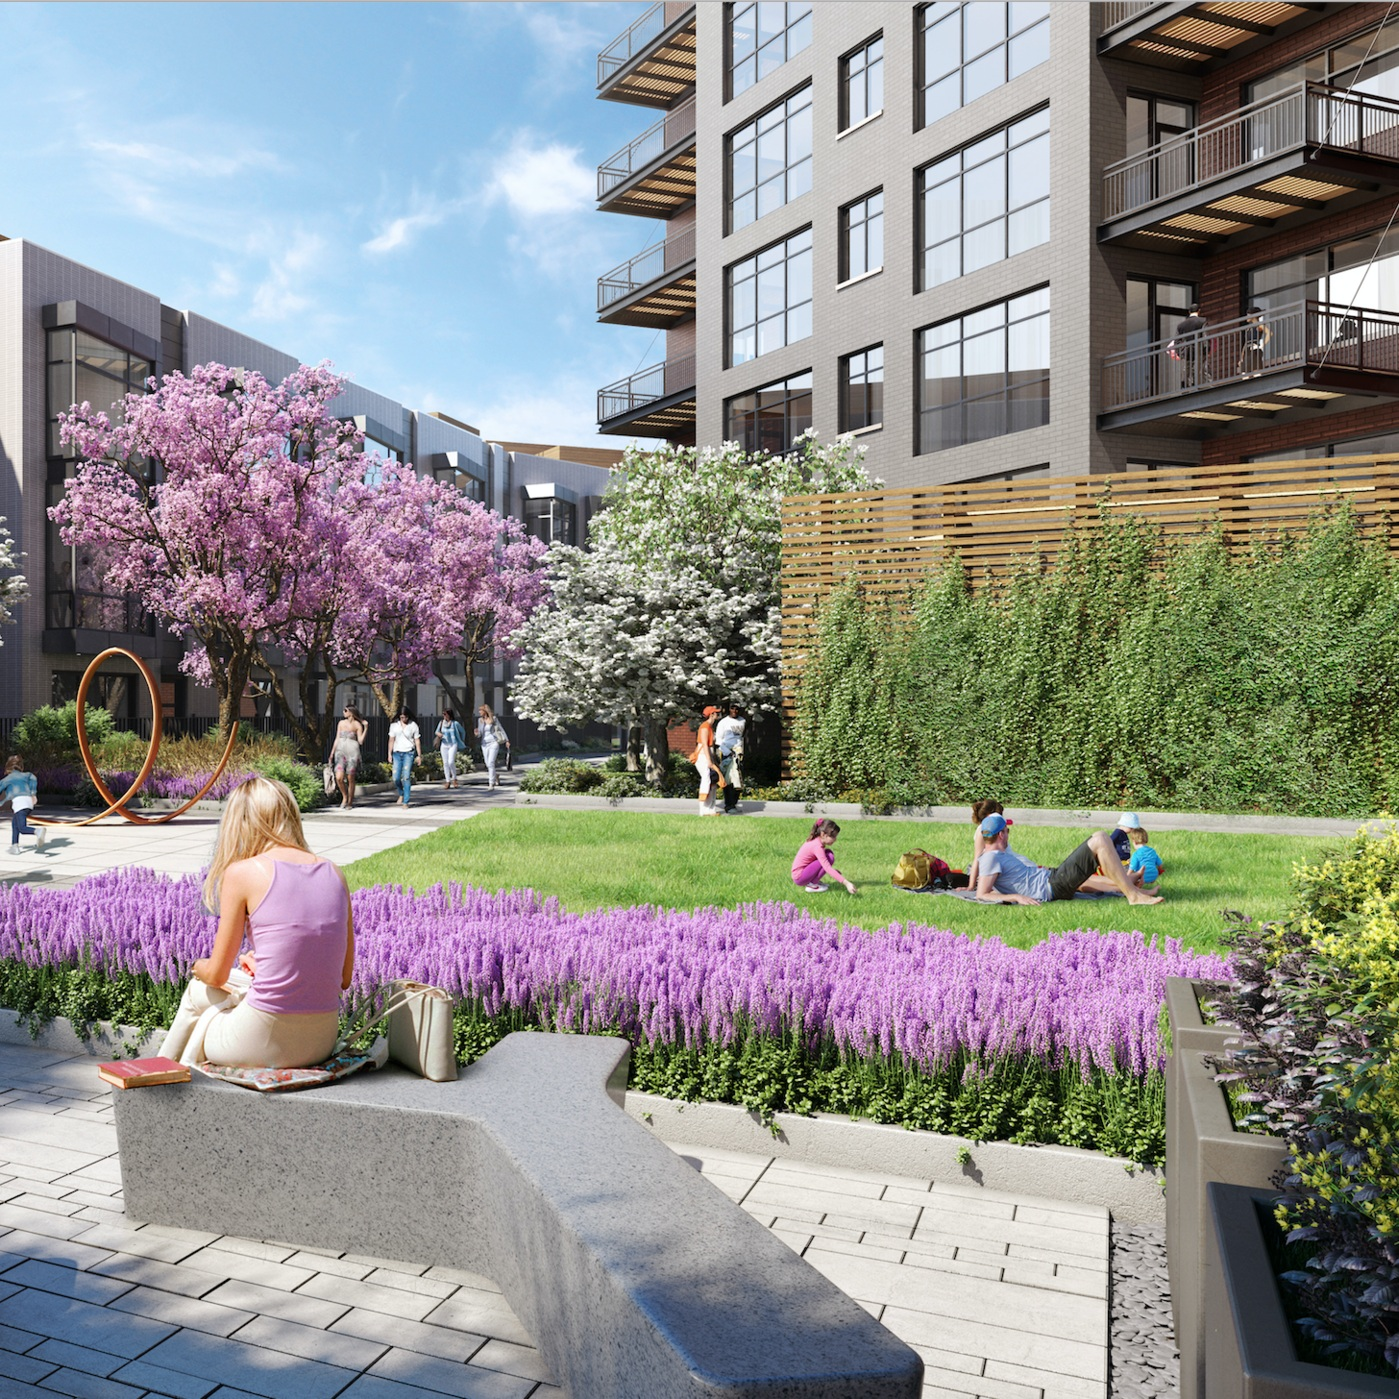 MULTIFAMILY DEVELOPMENT GREEN SPACES FOSTER SENSE OF COMMUNITY - FORBES > 9.25.2018